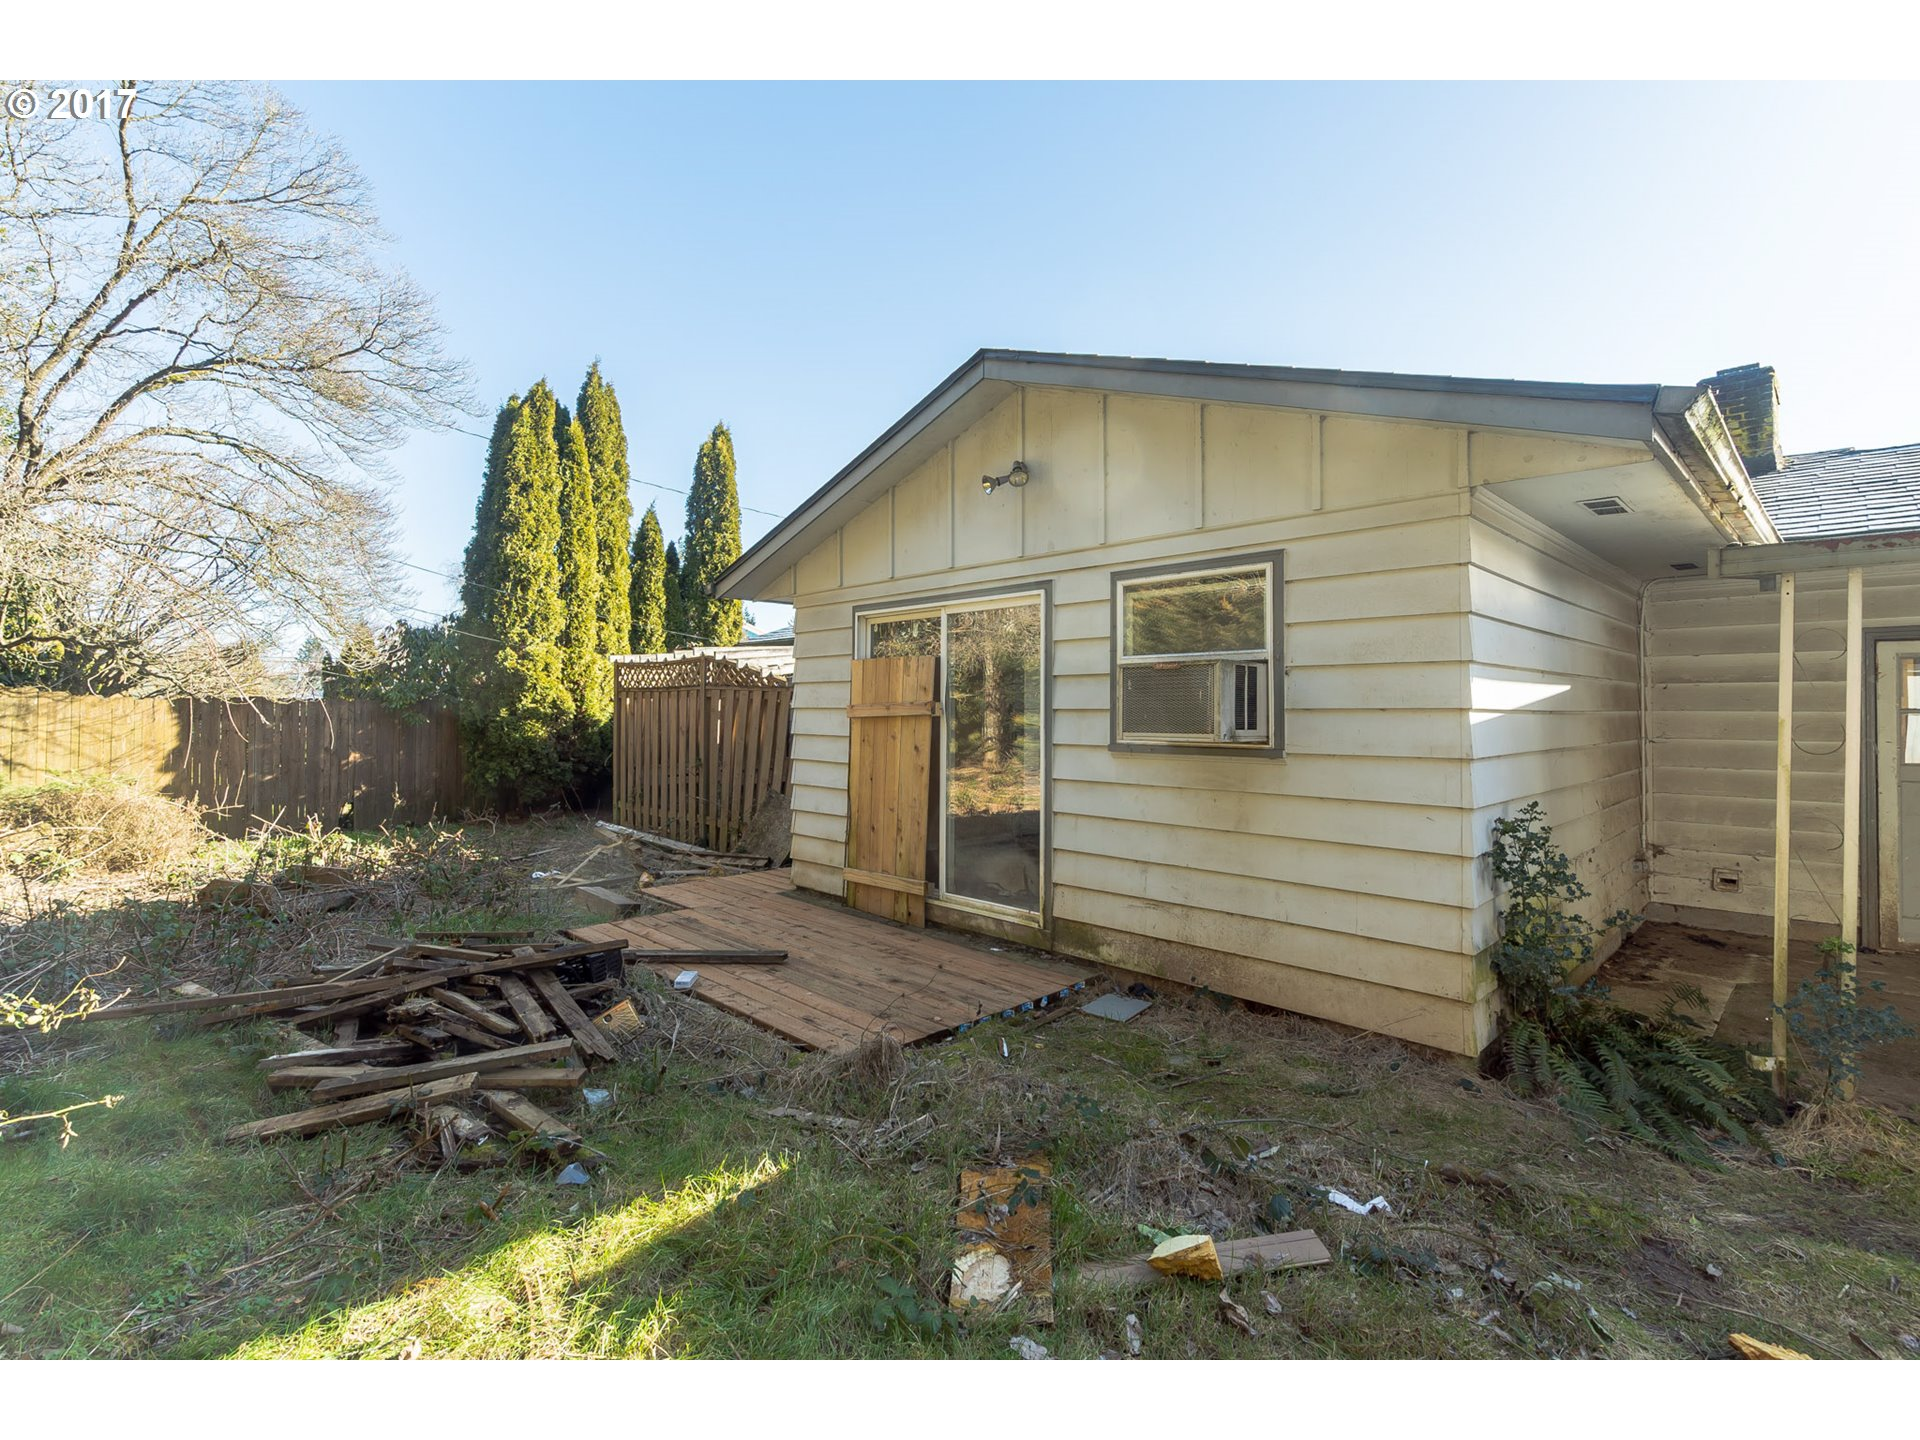 1450 sq. ft 3 bedrooms 2 bathrooms  House , Portland, OR